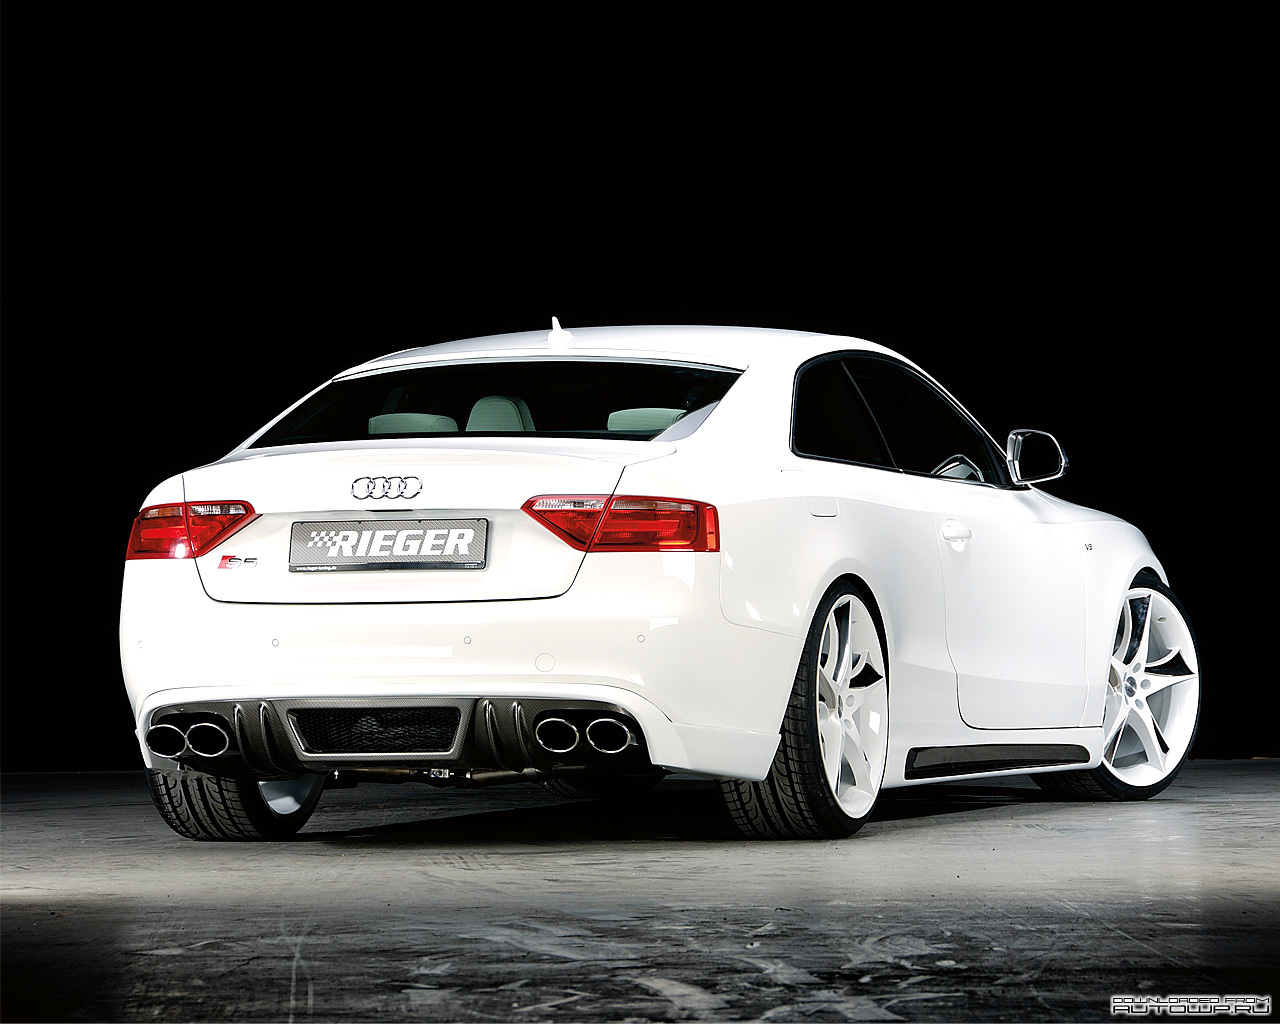 Audi s5 white cars wallpapers and pictures car images car pics carpicture - Car wallpapers for galaxy s5 ...